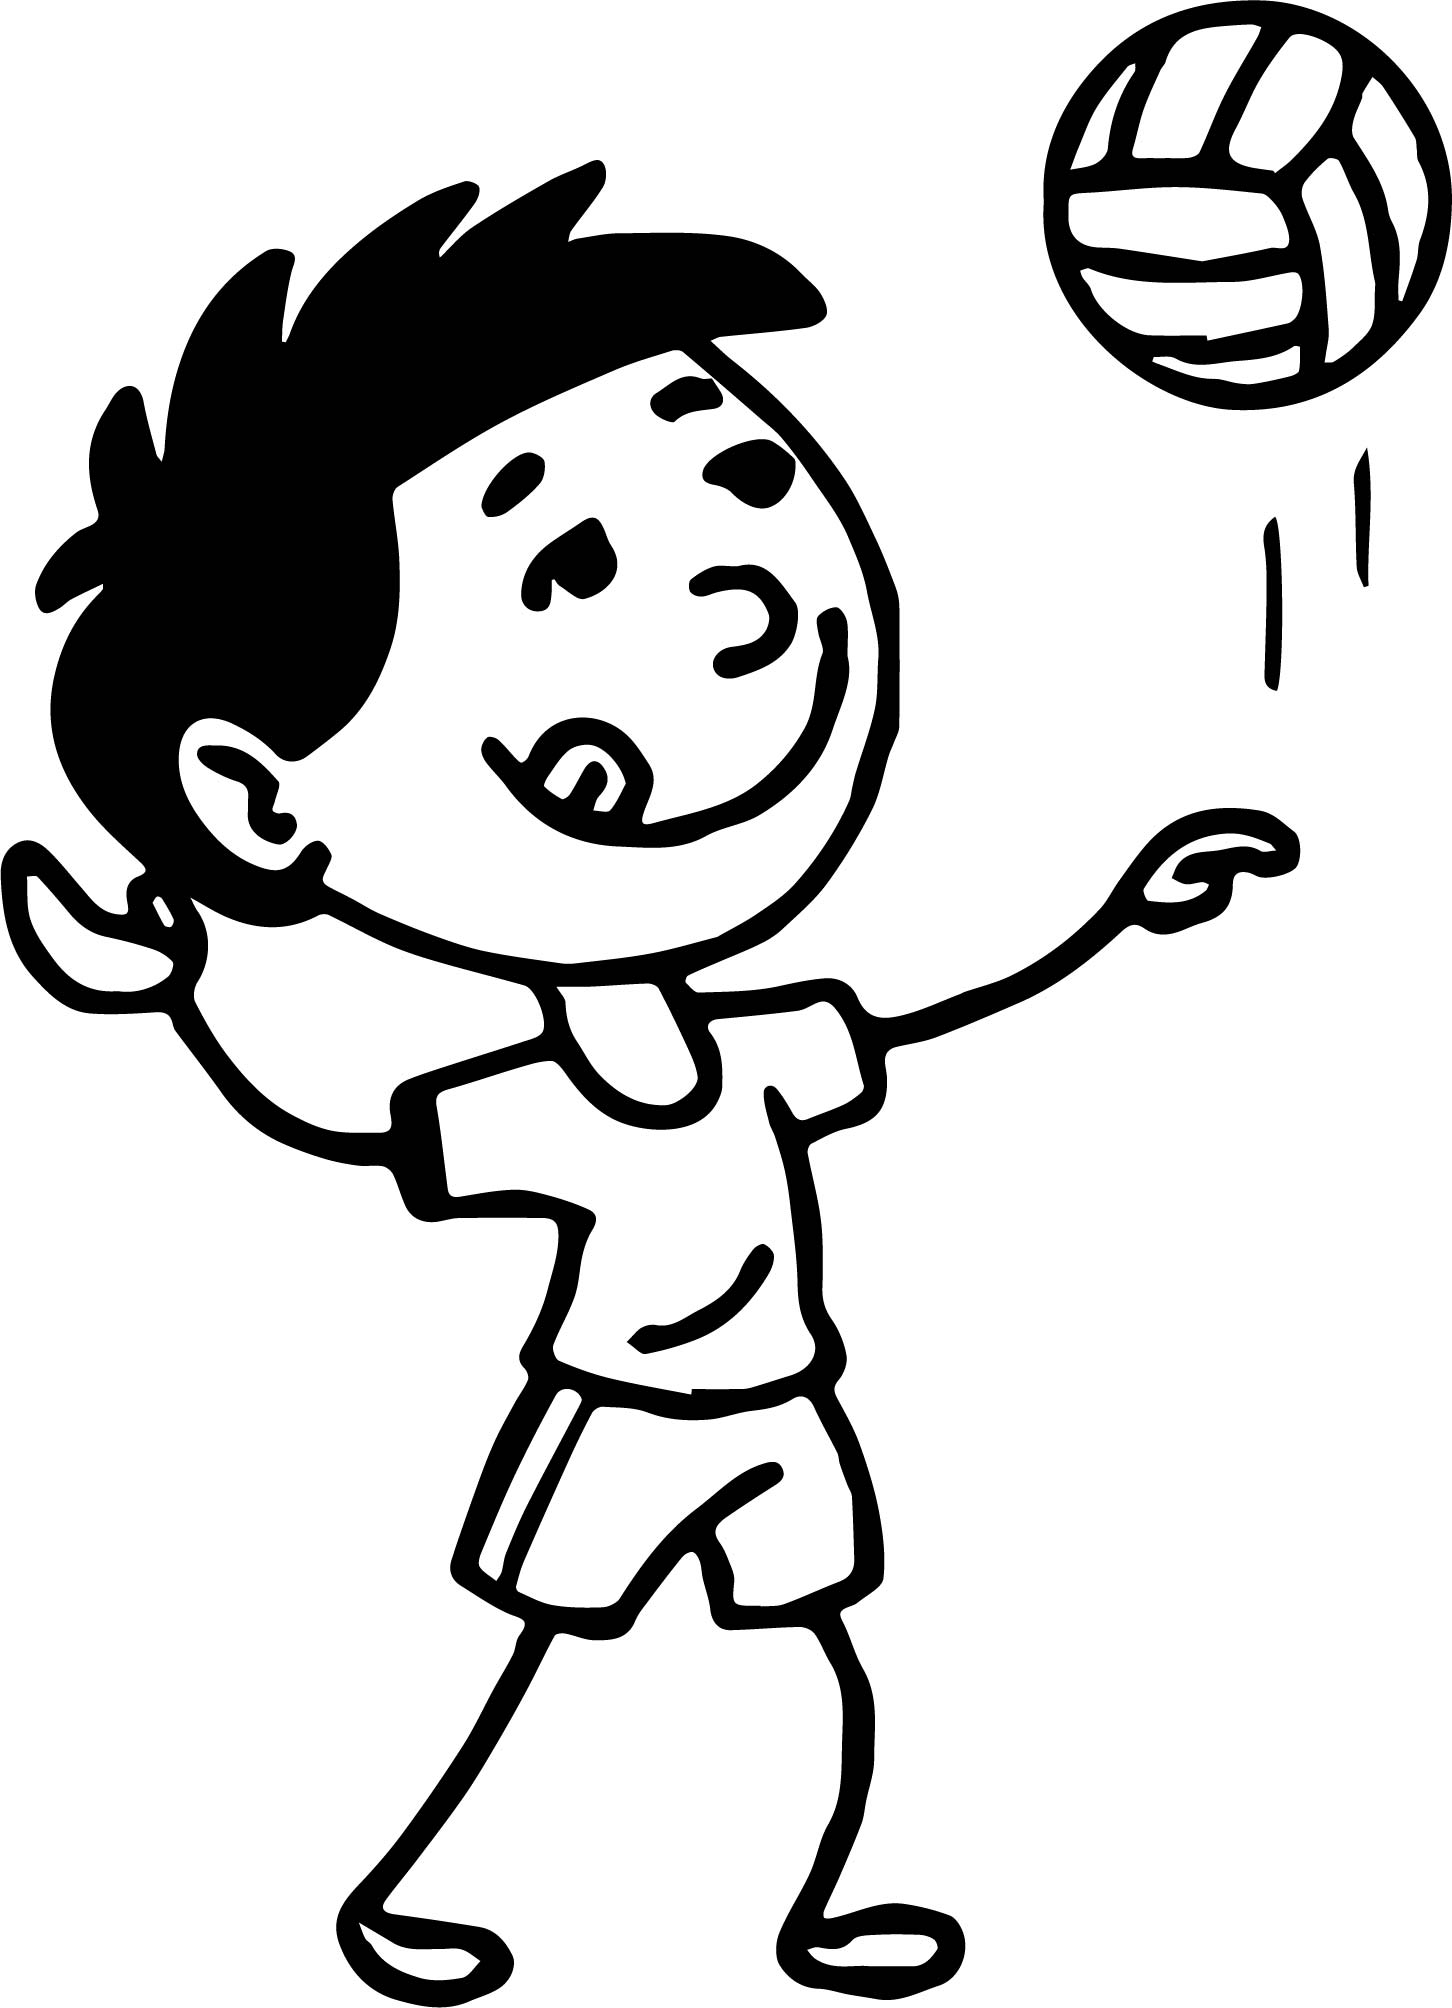 volleyball net coloring pages - photo#44